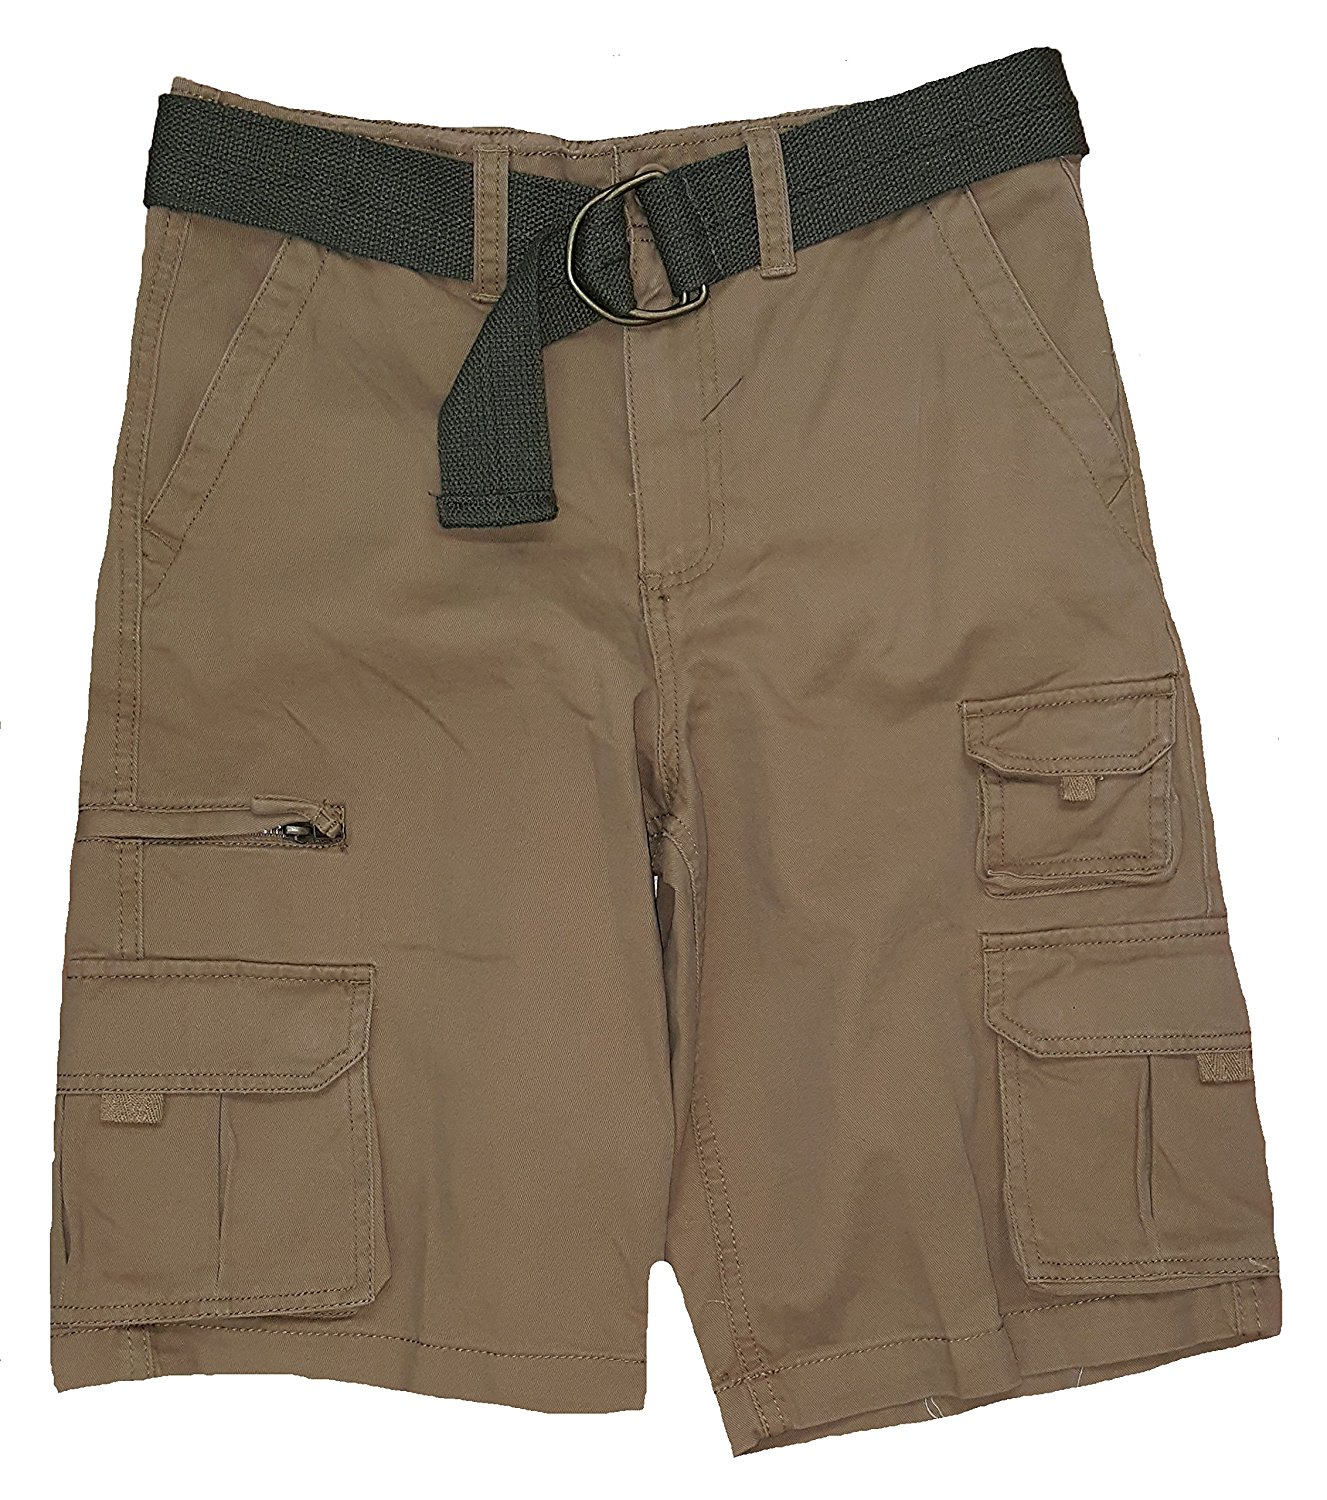 bbe77fdafc ... 36 Faded Glory Men's Stacked Cargo Short - Outpost Brown - Size: ...